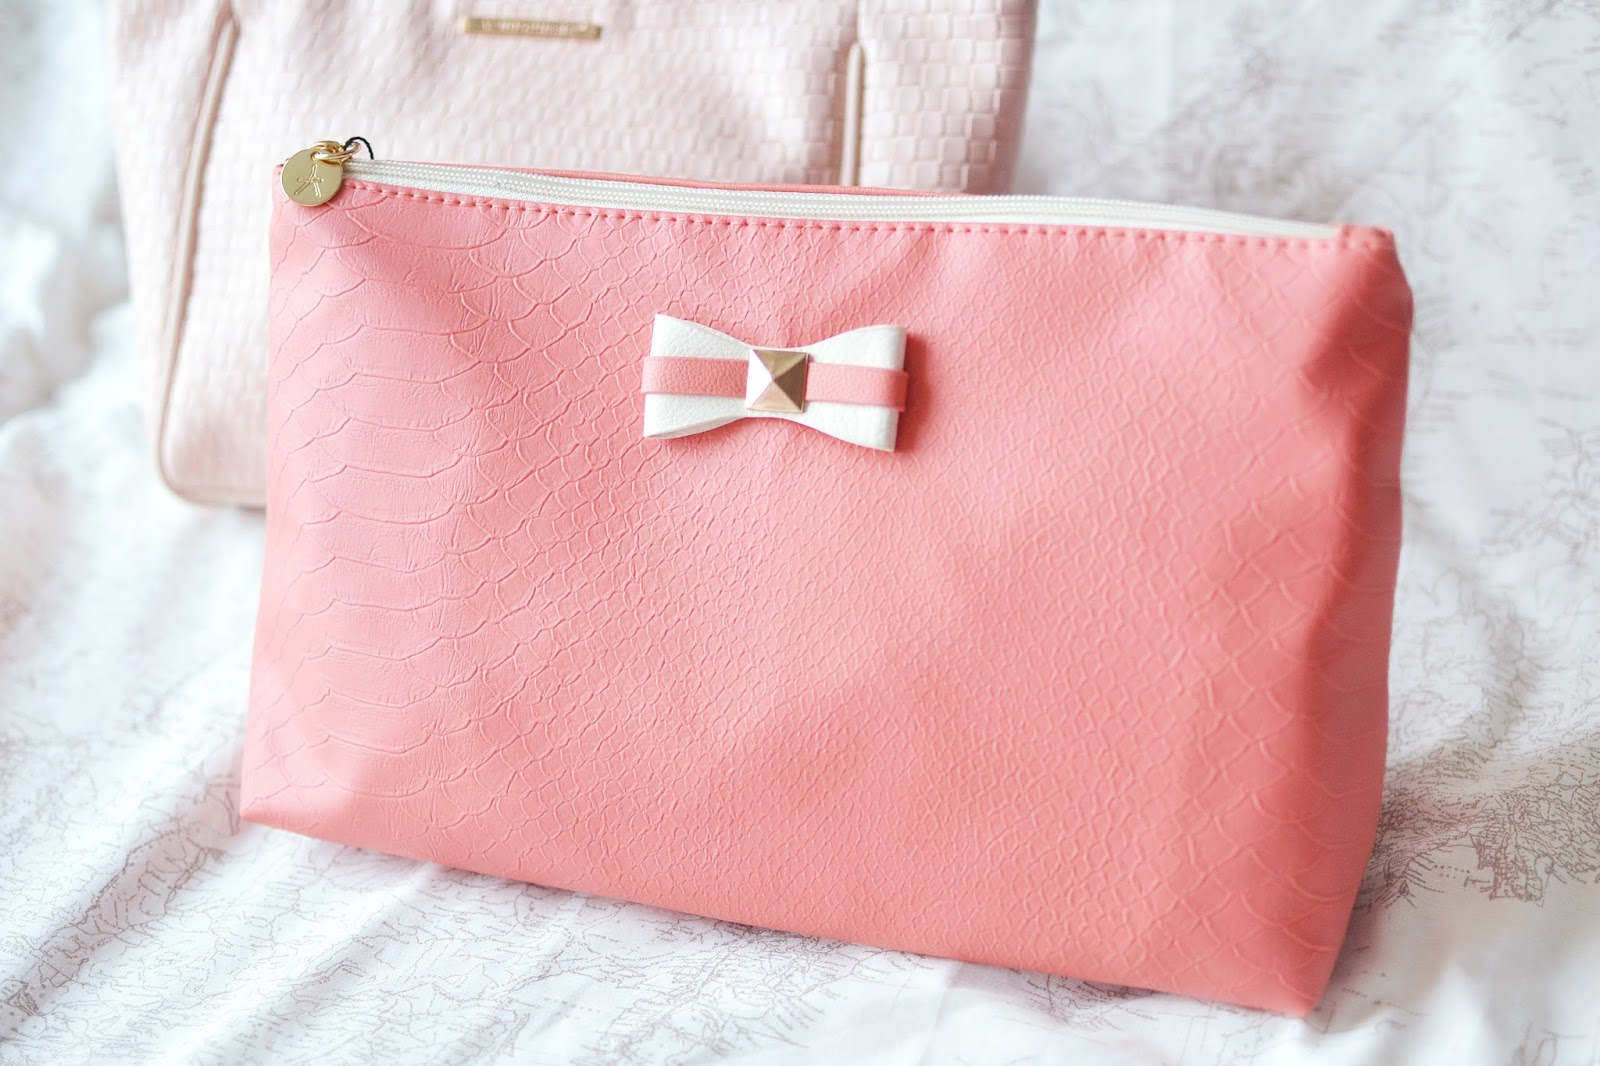 primark haul 2015, primark haul january 2015, coral make up bag, wash bag